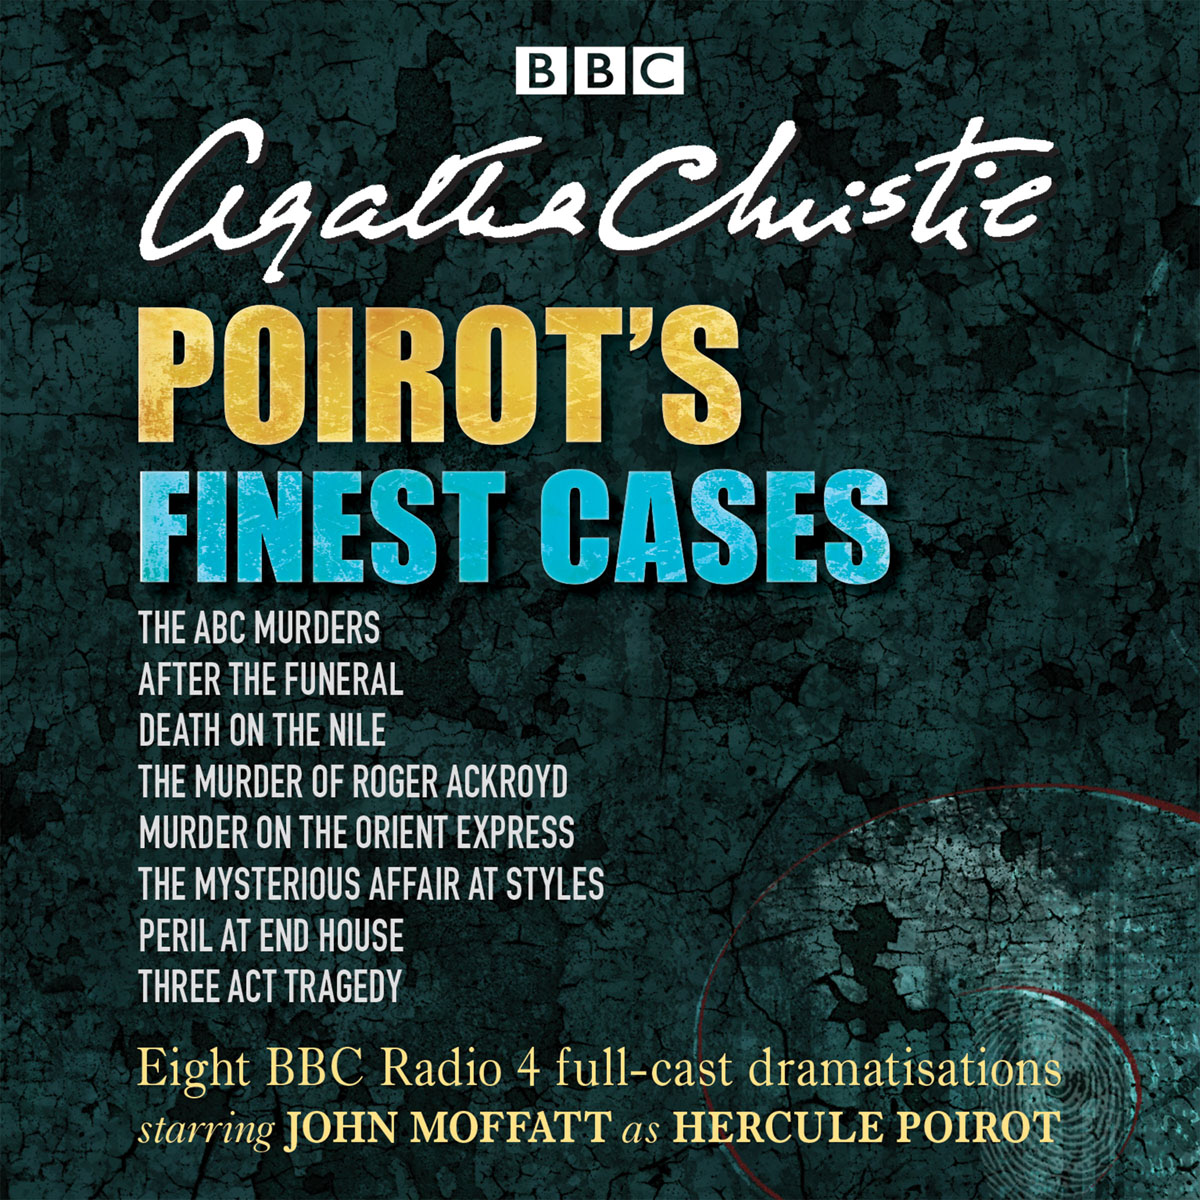 Poirot's Finest Cases щебень фракция 20 40 мм 50 кг